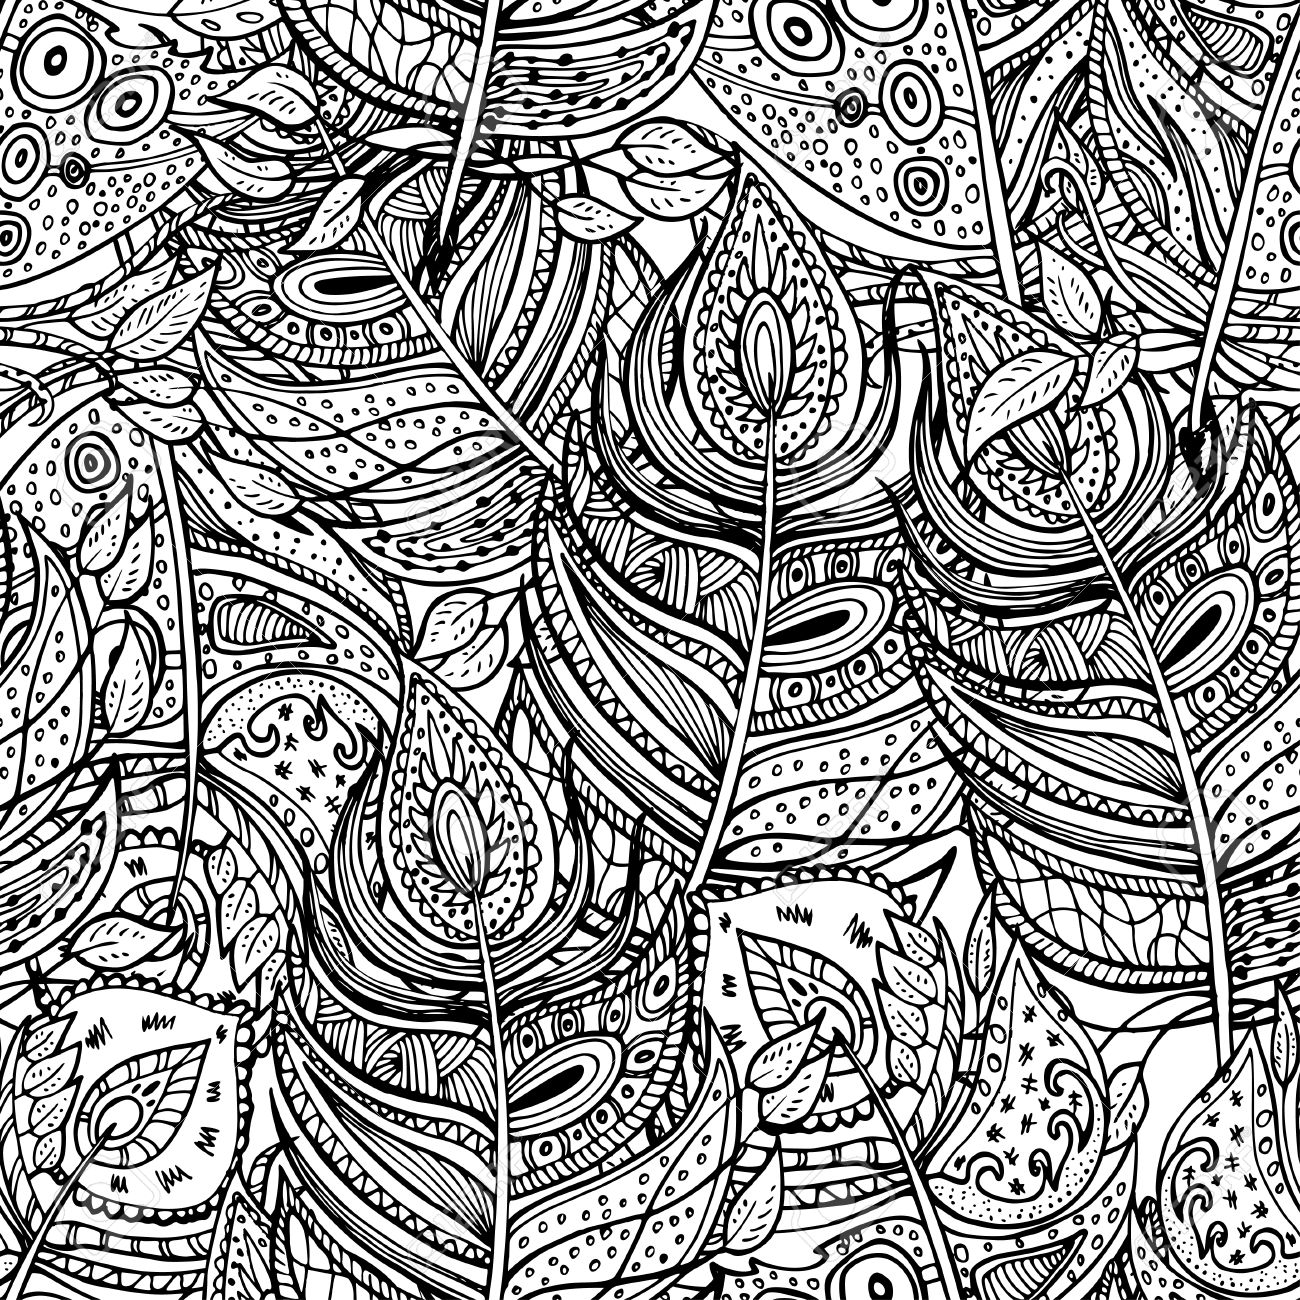 Ethnic Retro Design With Feathers In Zentangle Style Abstract Ornament For Textile Fashion Fabric Wallpaper Wrapping Paper Etc